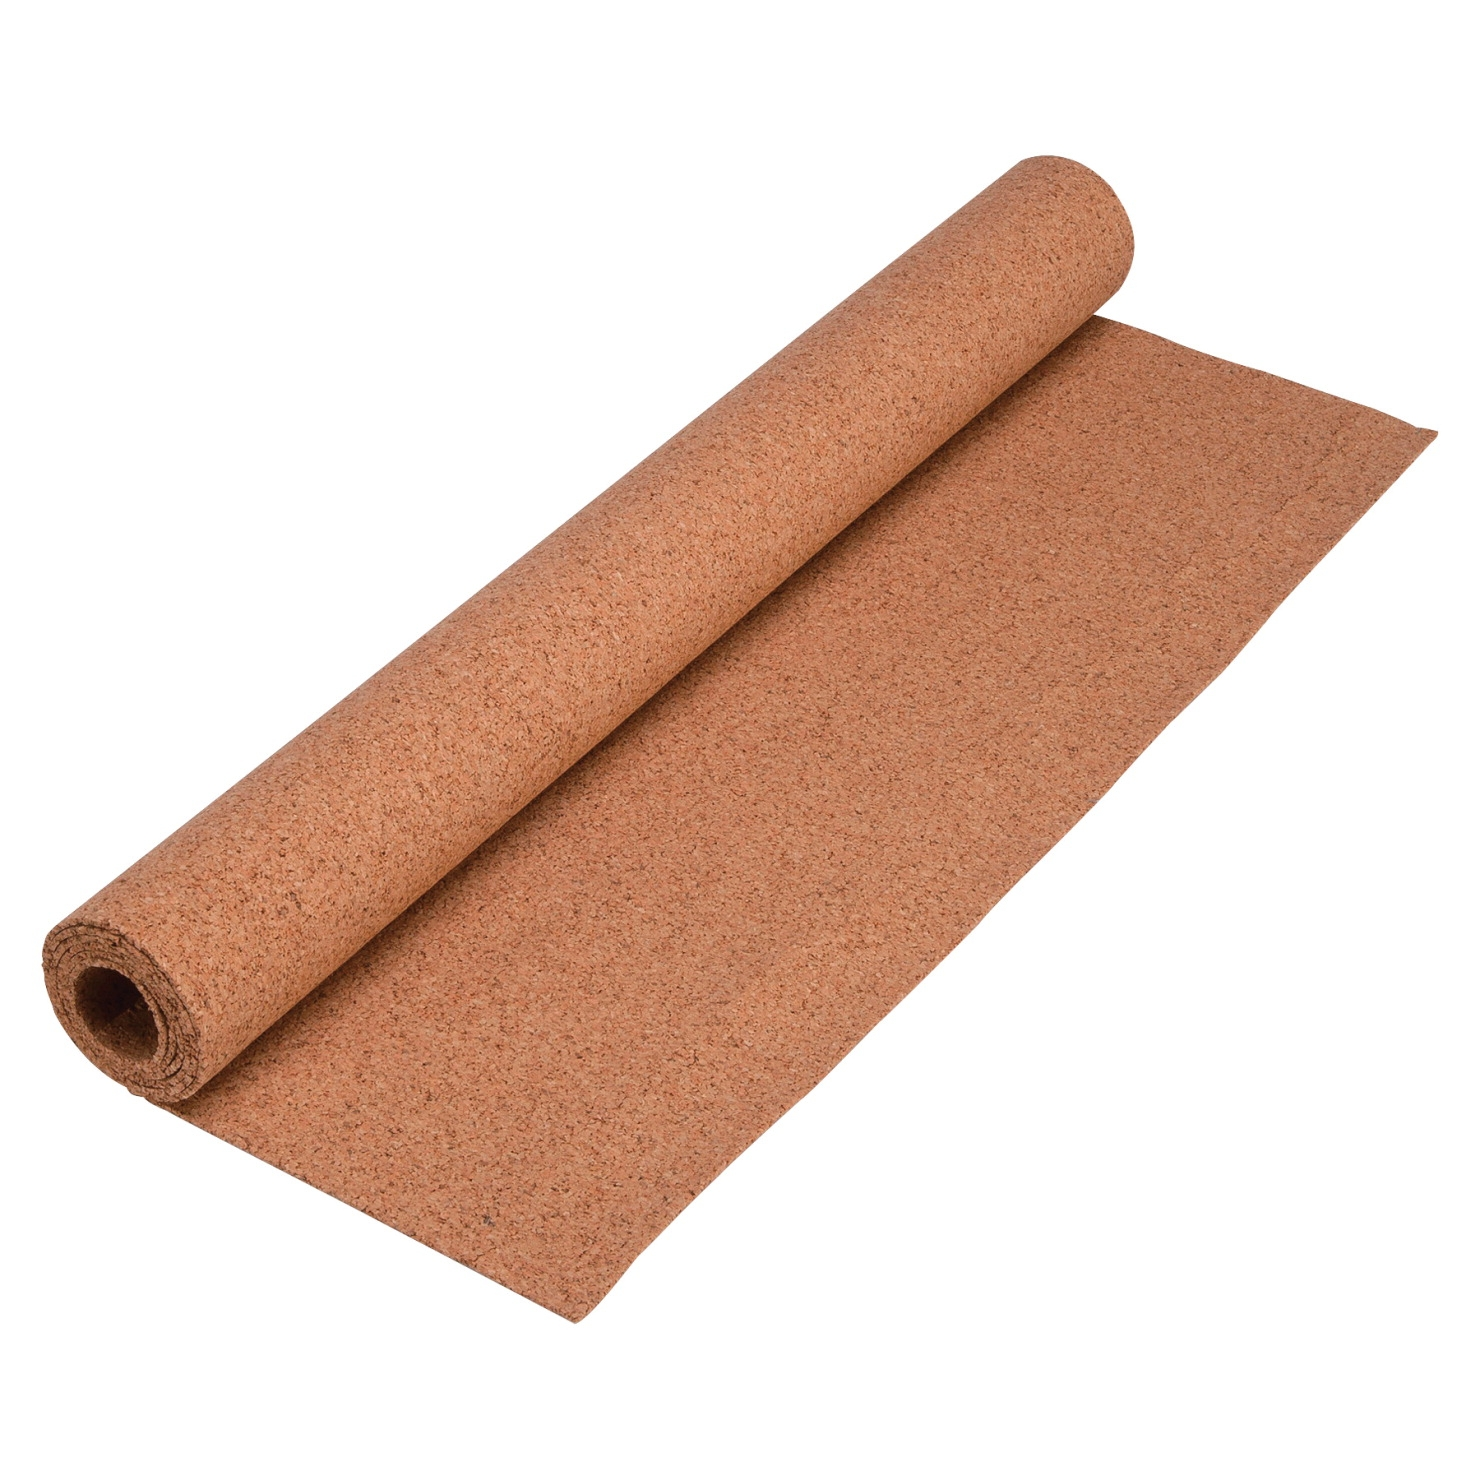 Lorell Bulletin Board Roll; 24 X 48 X 3/32 In; Natural Cork; Brown - 1442571 - Toys Conceptual Knowledge Of The Natural And Physical World 1442571